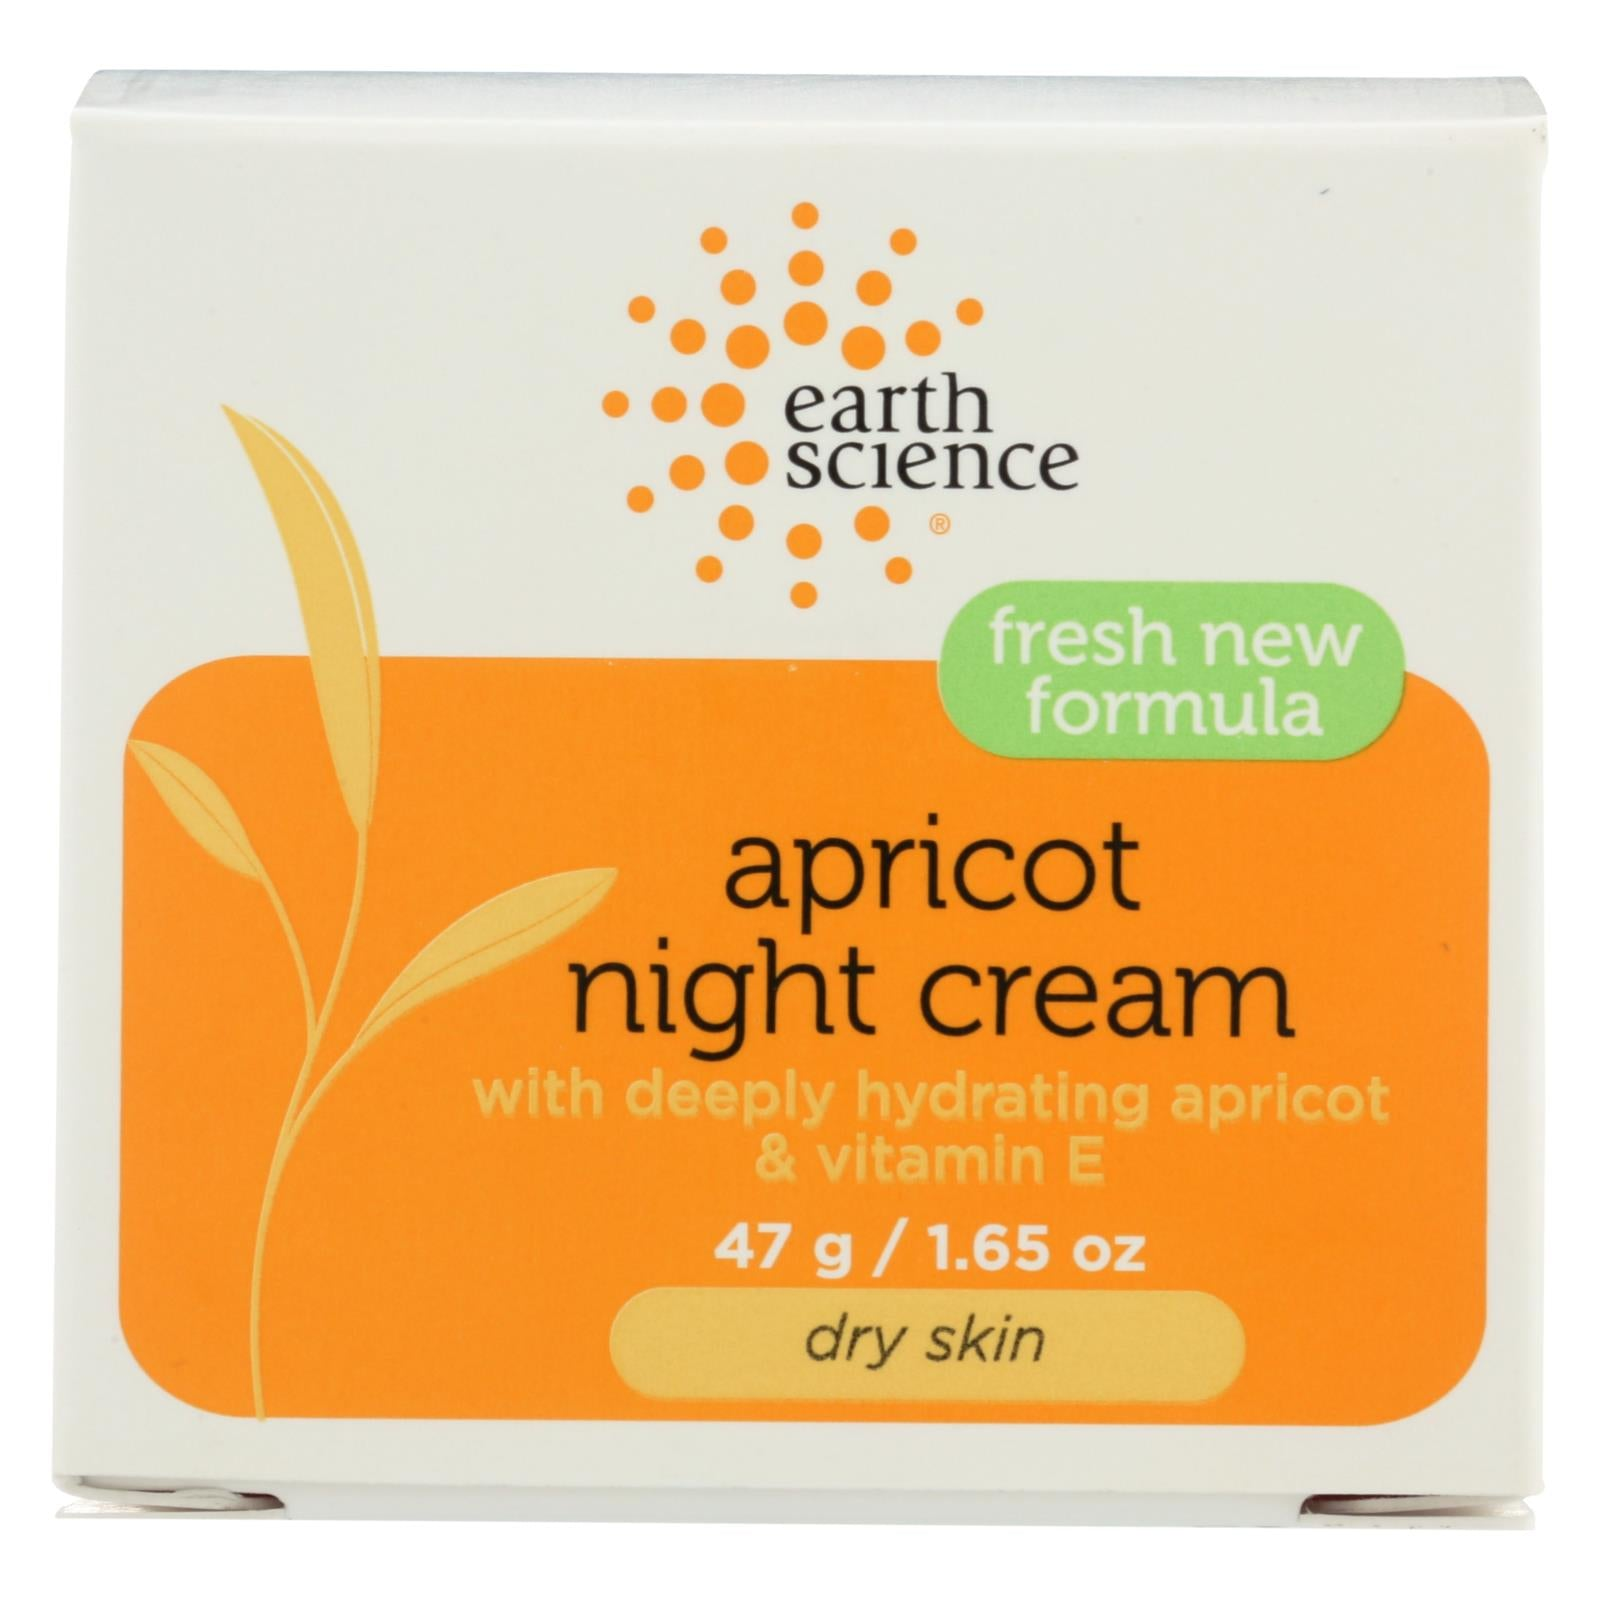 Buy Earth Science Apricot Night Cream - 1.65 oz - Moisturizers from Veroeco.com